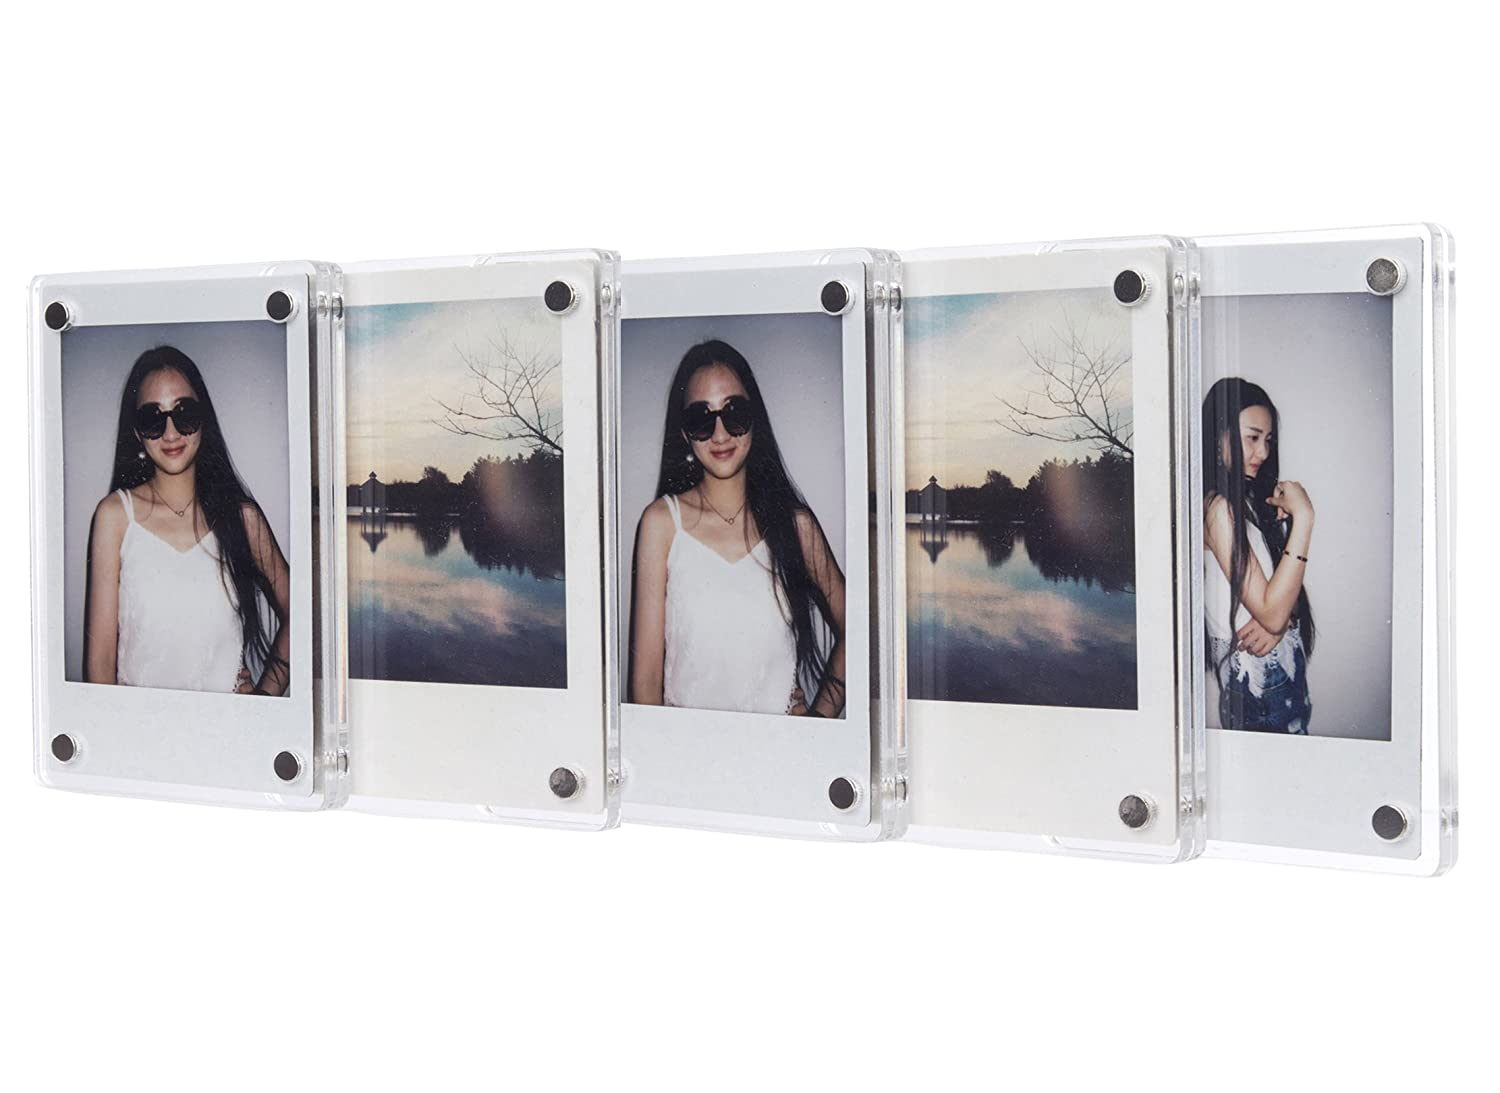 amazoncom fujifilm instax mini frame caiul clear acrylic fridge magnetic frame double sided photo magnet frame for instax mini 8 8 9 70 7s 90 25 26 - Mini Frame